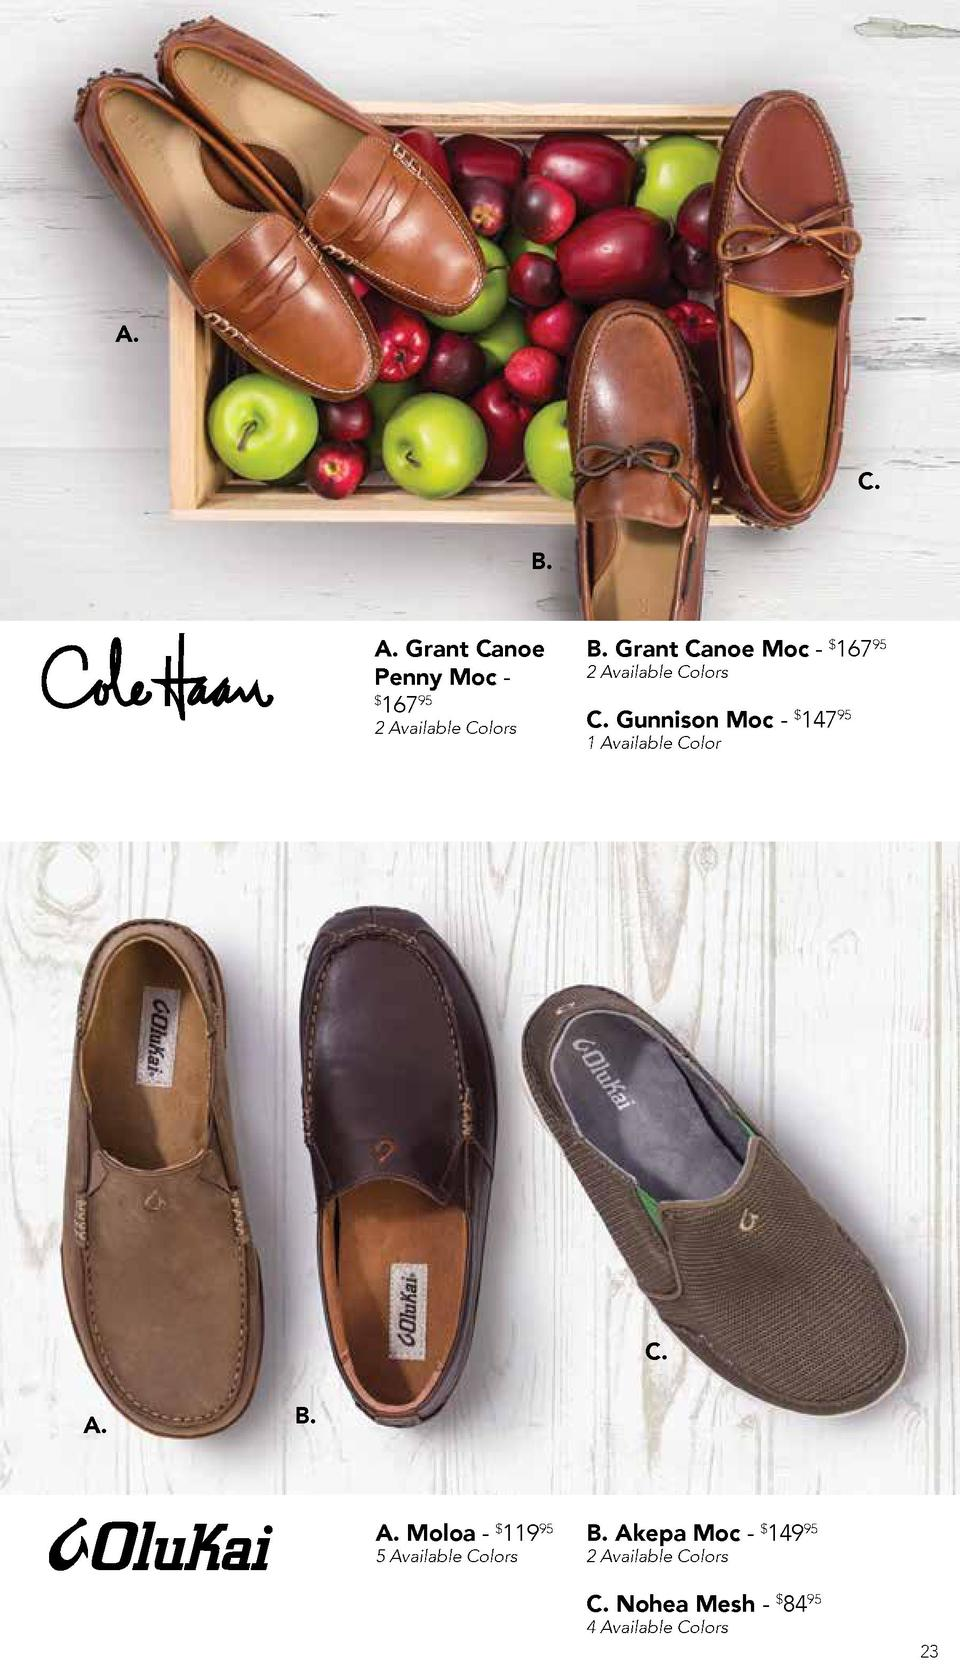 A.  C. B. A. Grant Canoe Penny Moc   16795 2 Available Colors  B. Grant Canoe Moc -  16795 2 Available Colors  C. Gunnison...